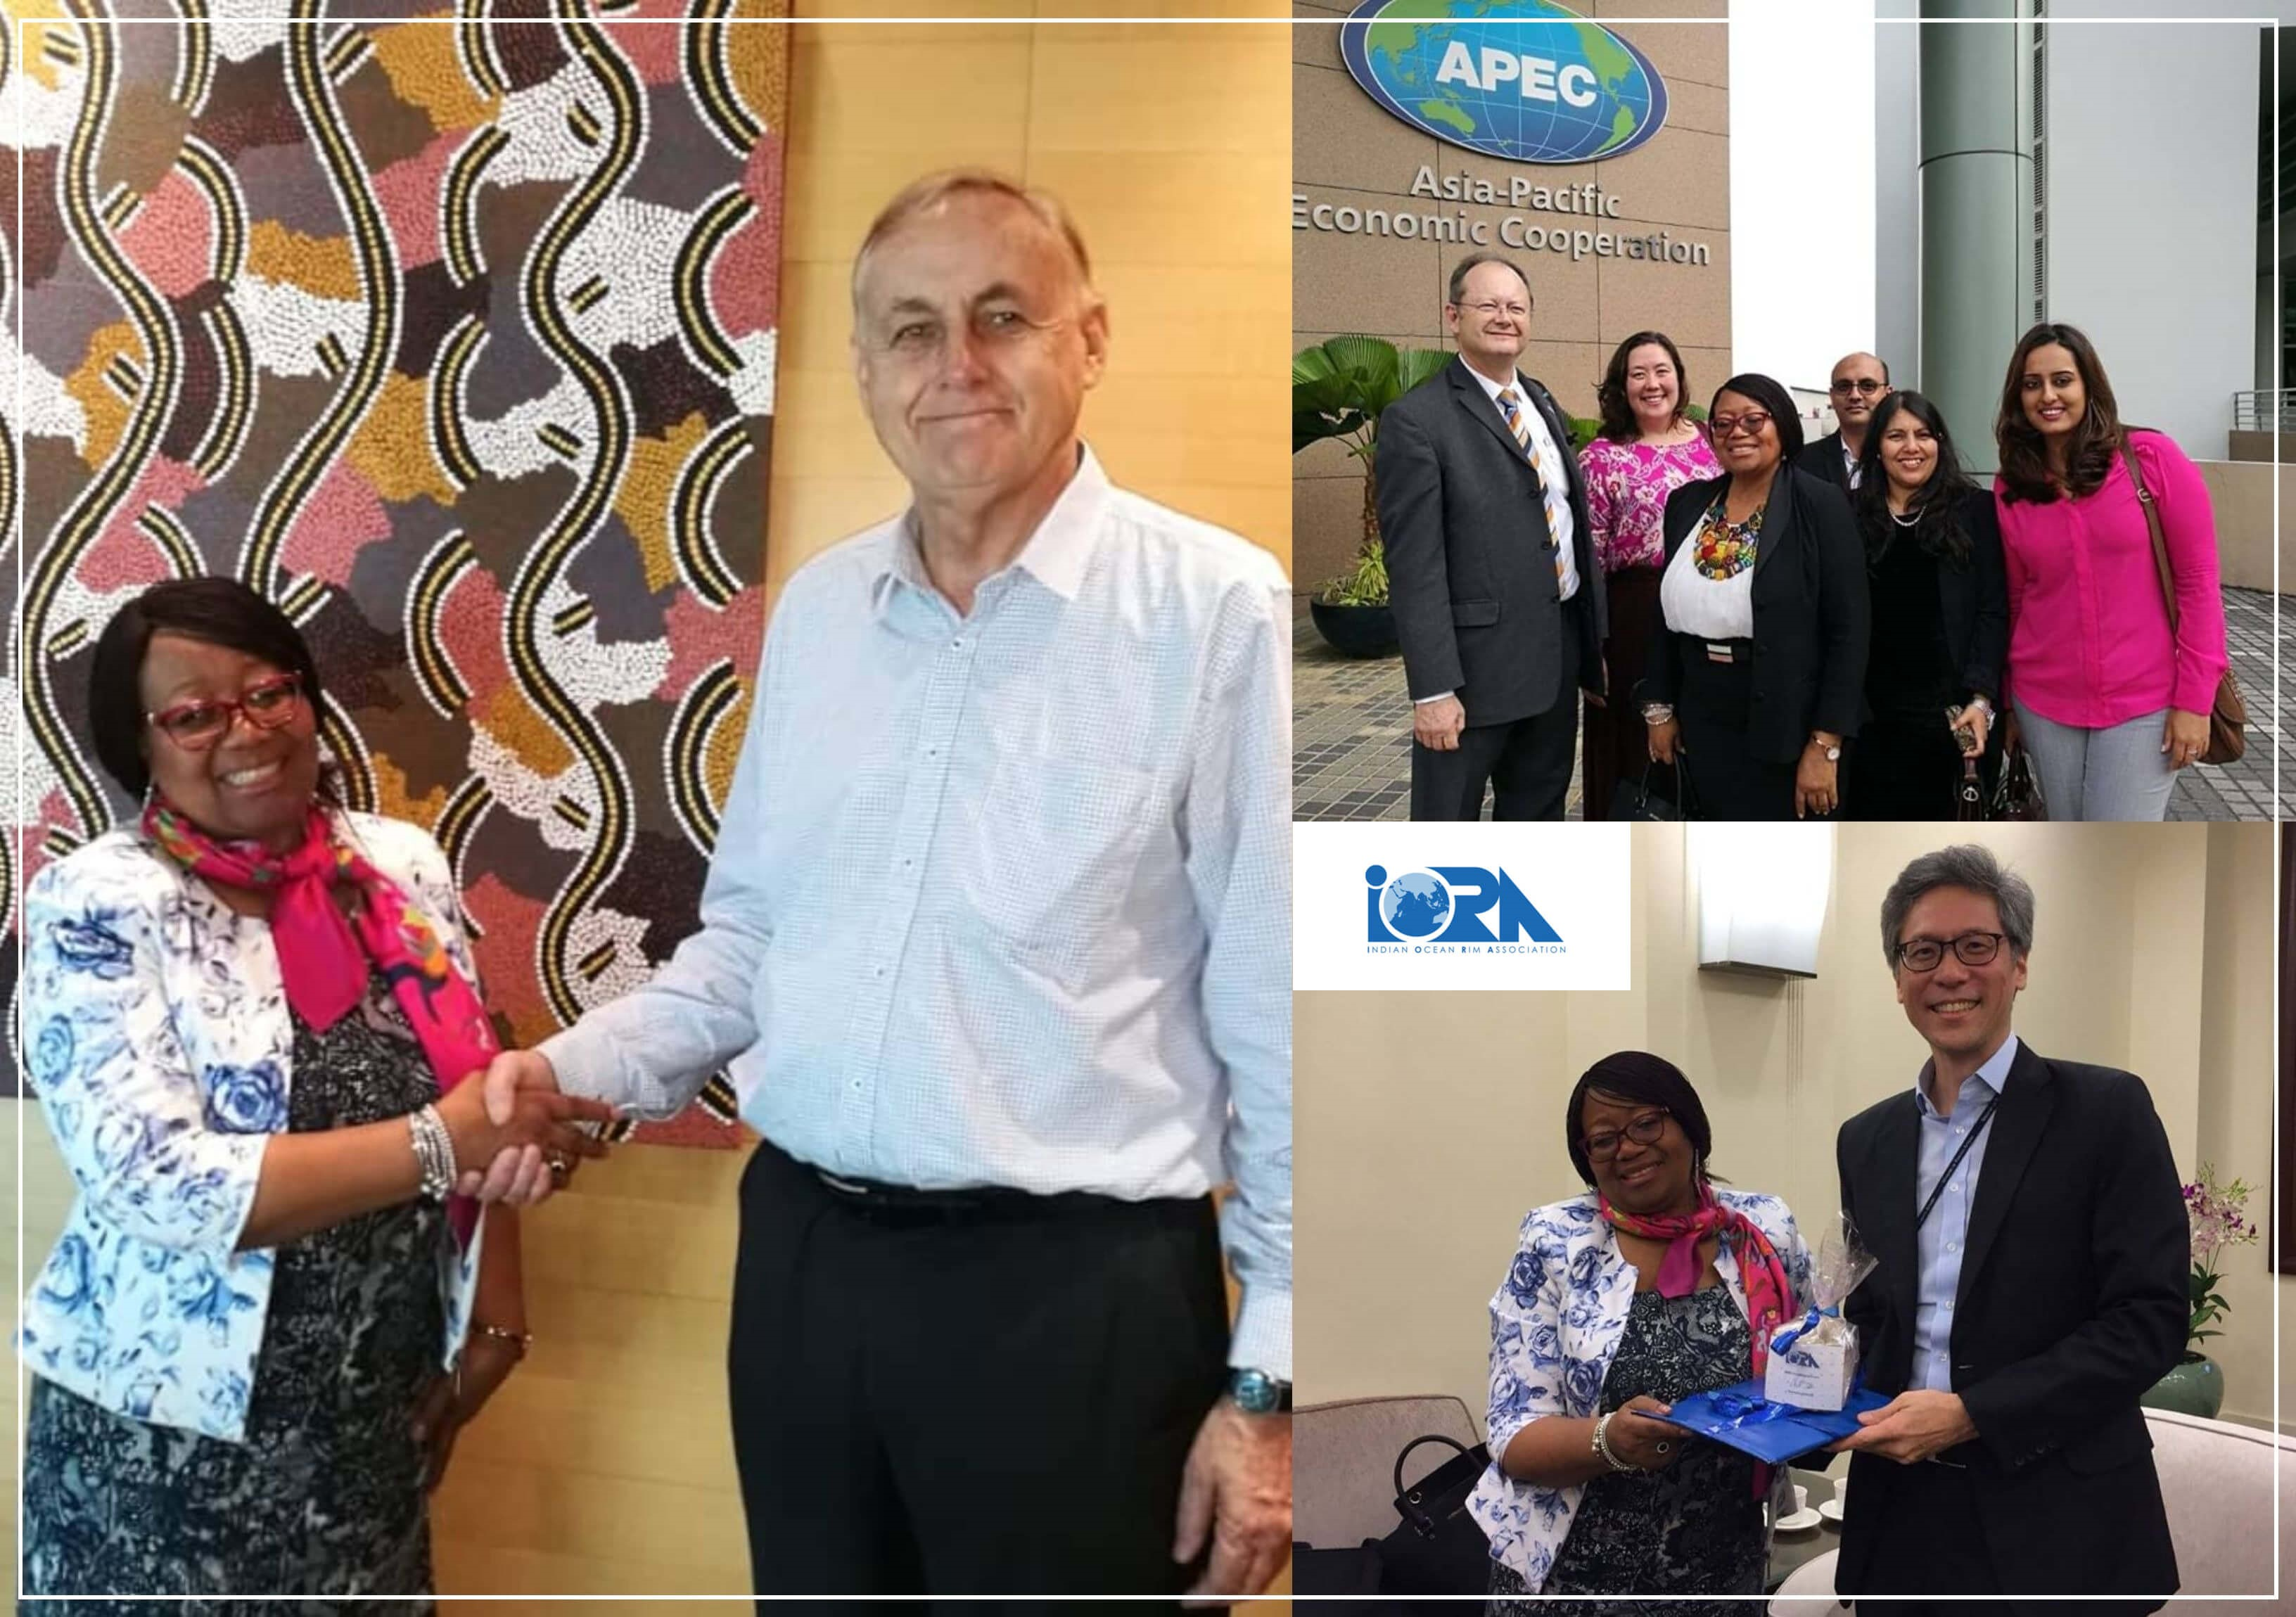 APEC and IORA Secretariat Exchange